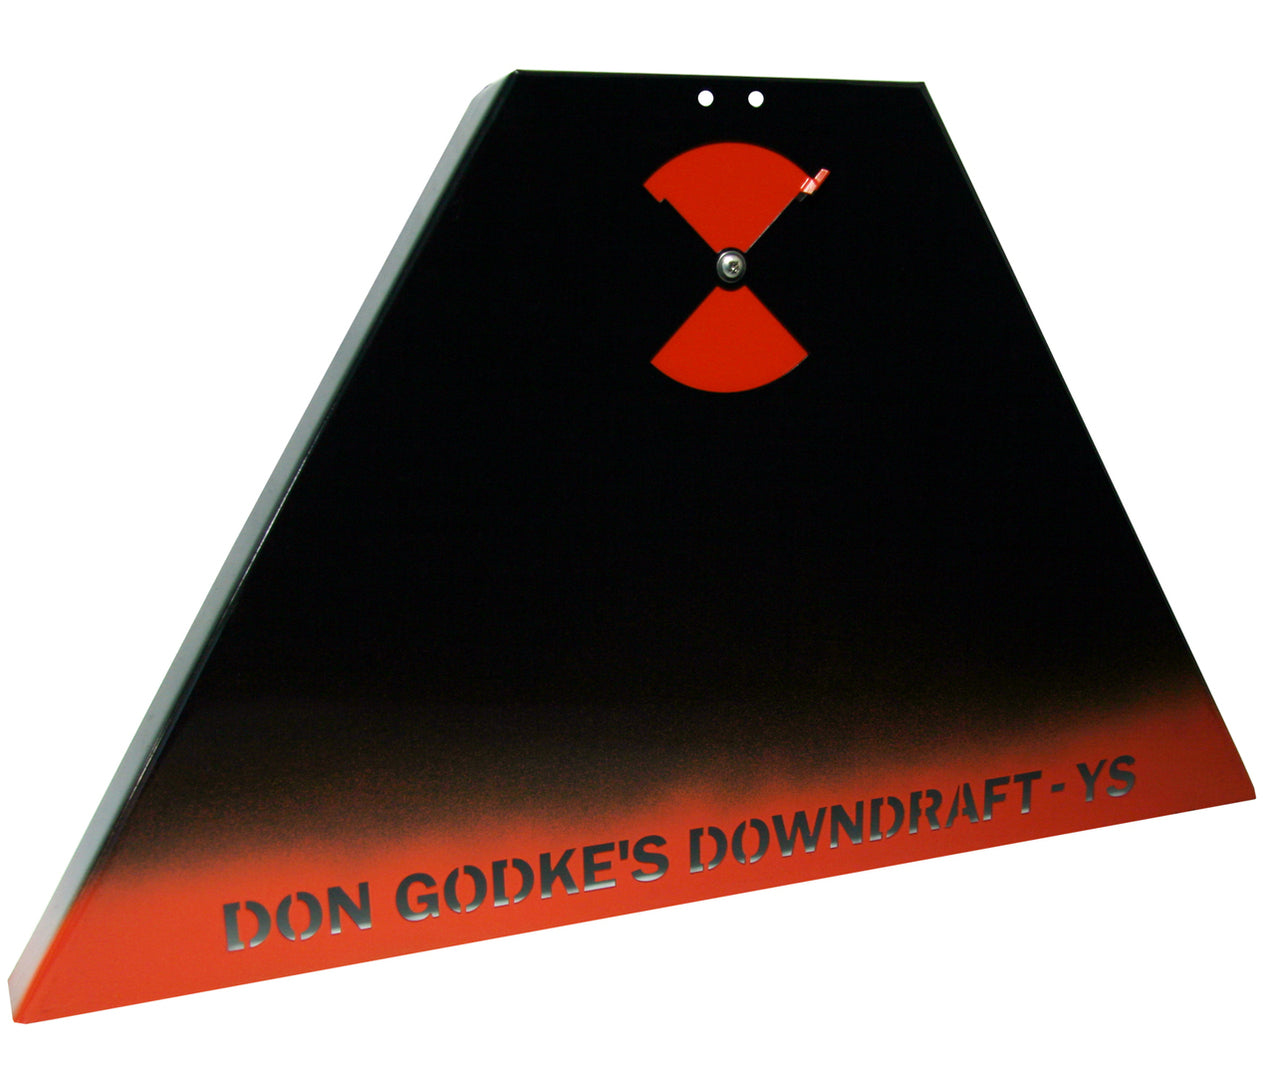 Don Godke's Downdraft - Painted Steel (Yoder YS480/YS640)